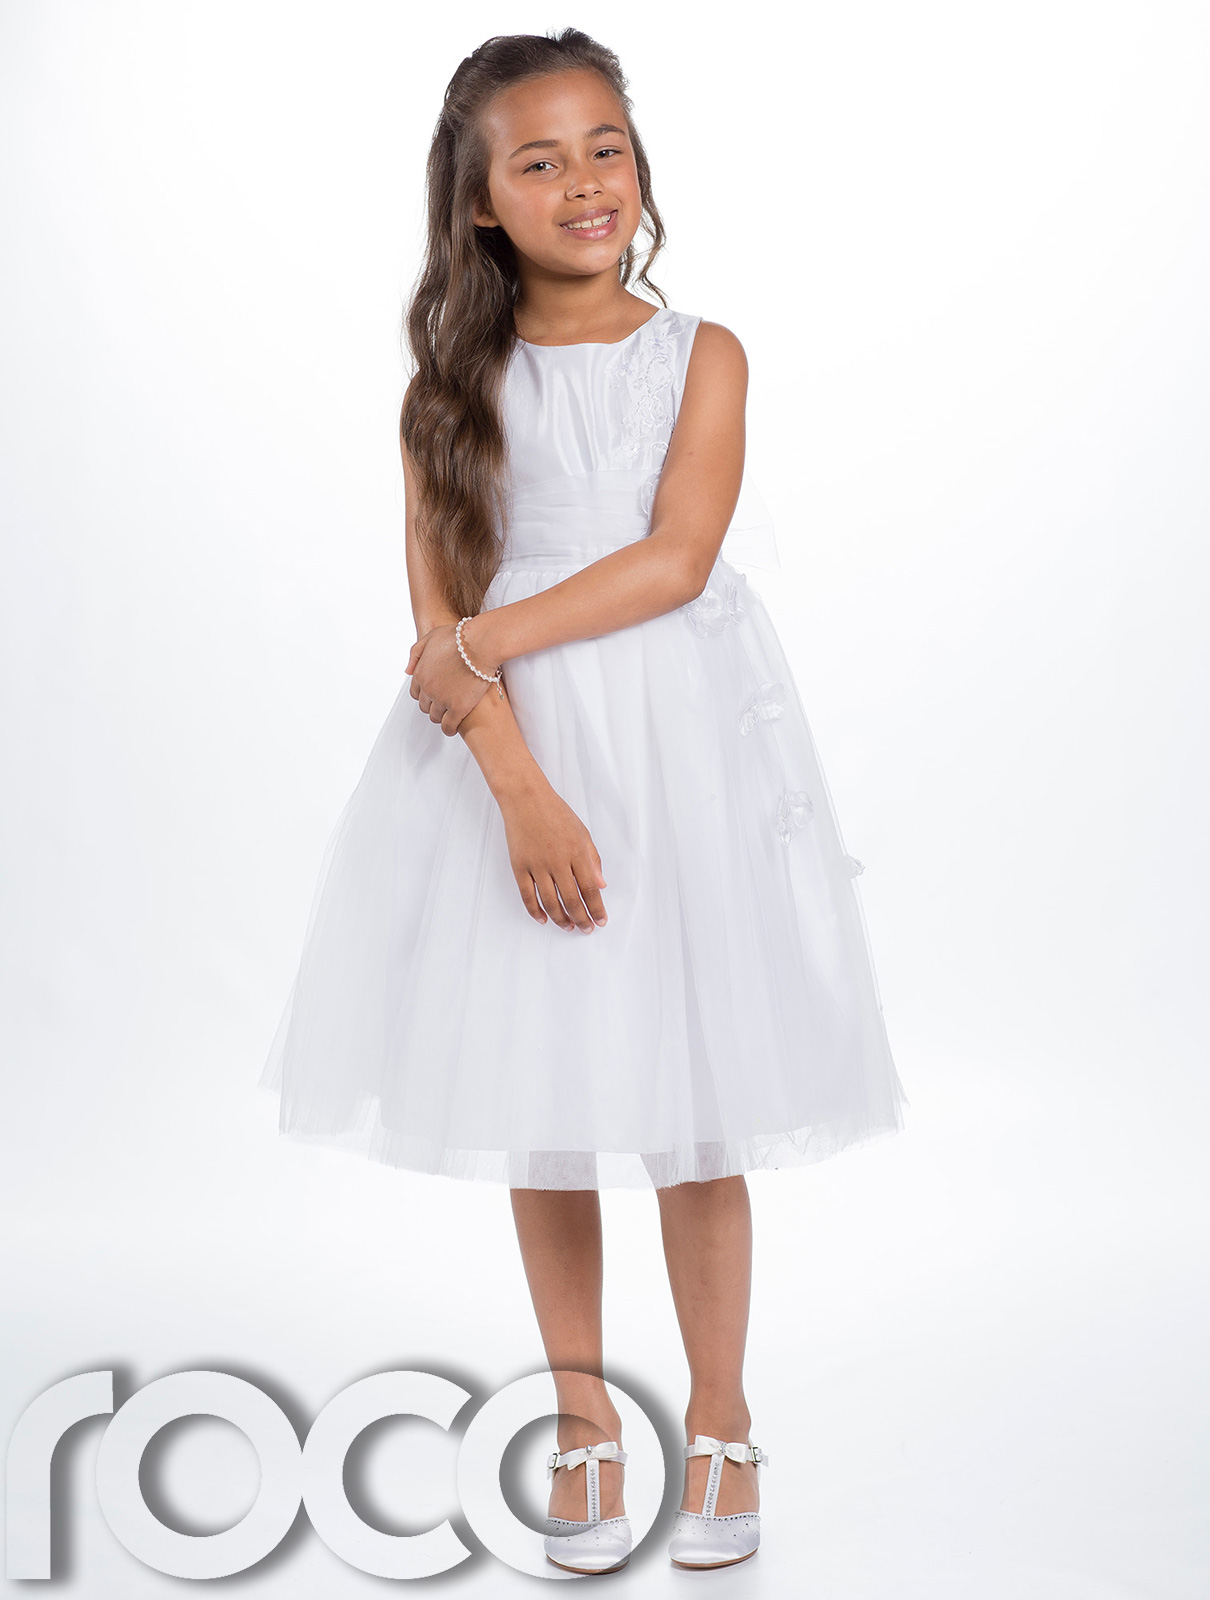 14 Year Old Girl in White Dress